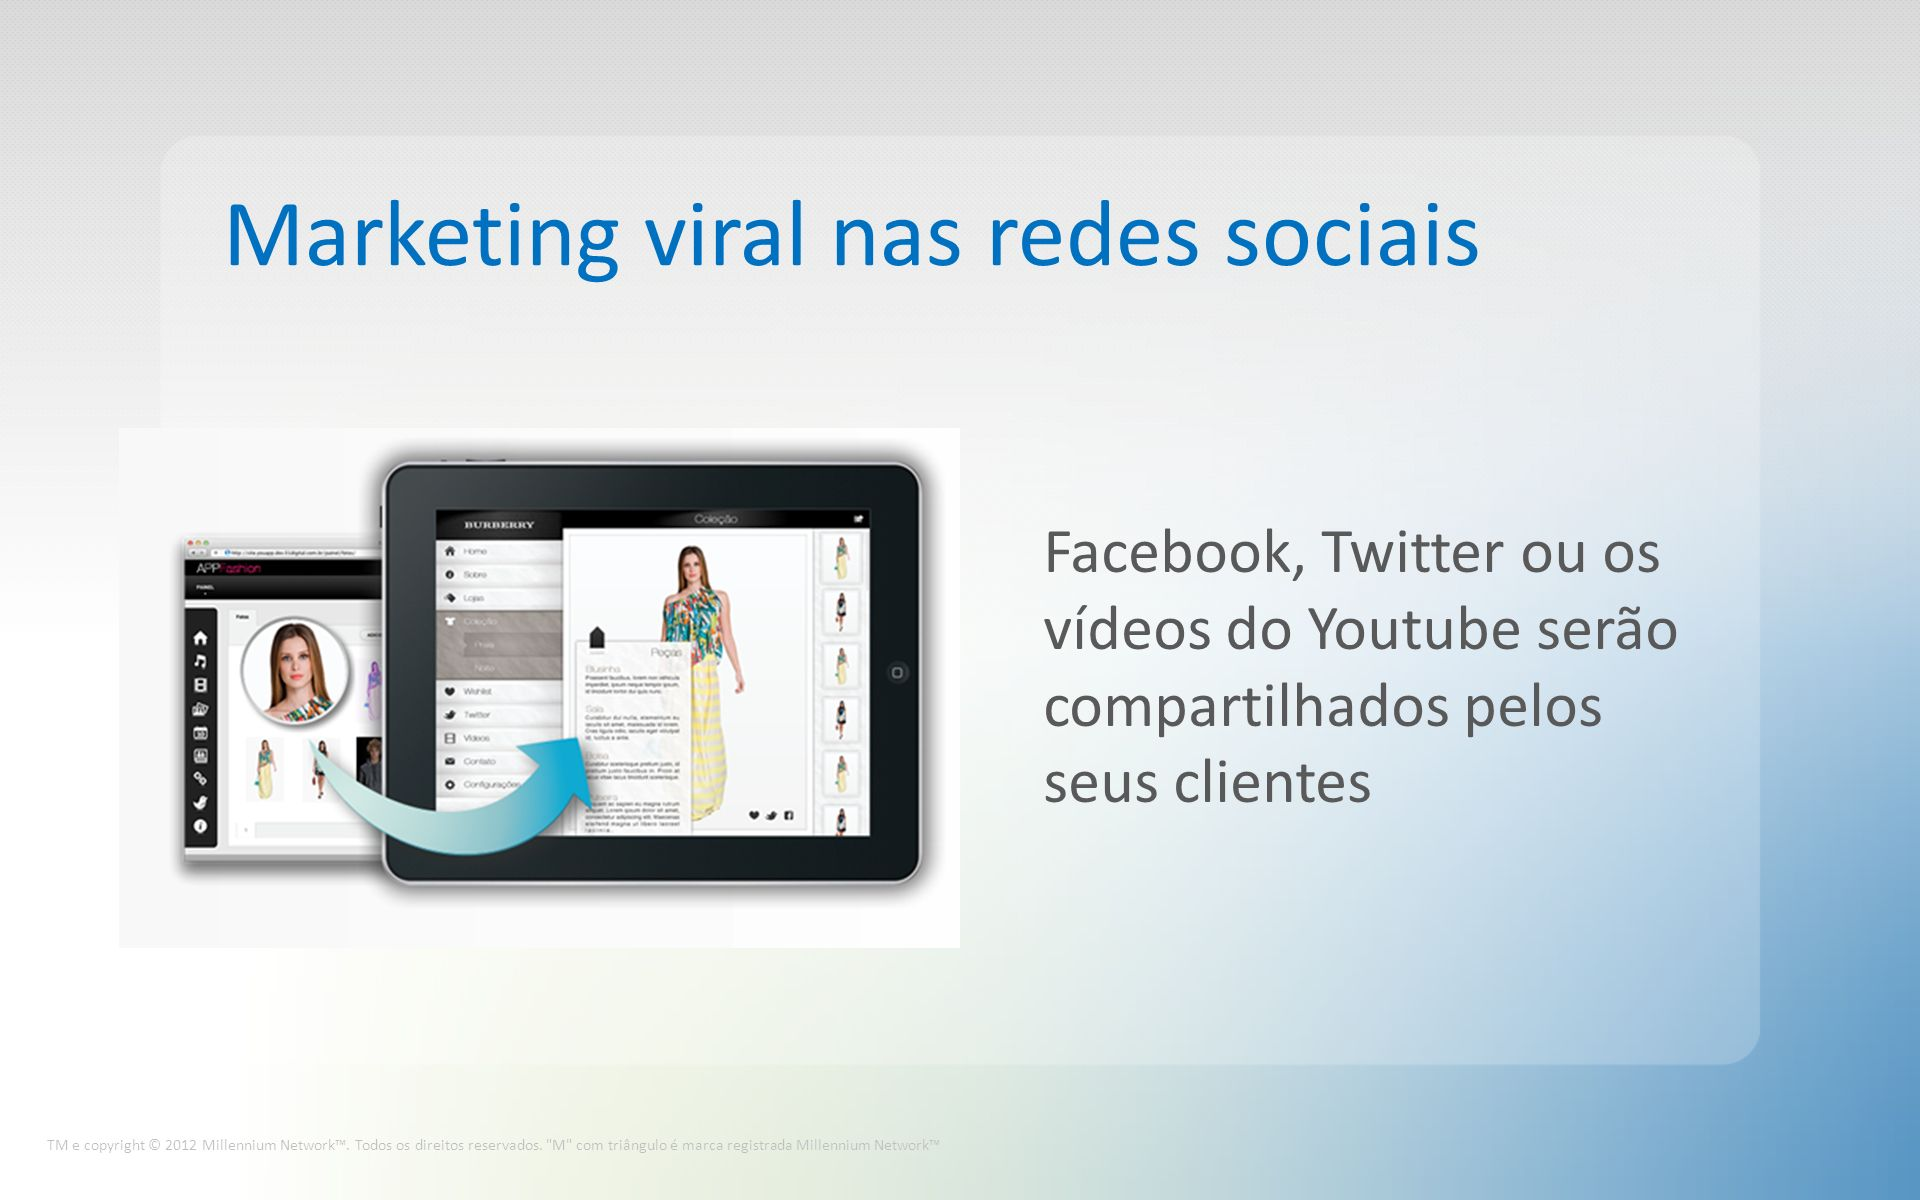 Marketing viral nas redes sociais TM e copyright © 2012 Millennium Network.